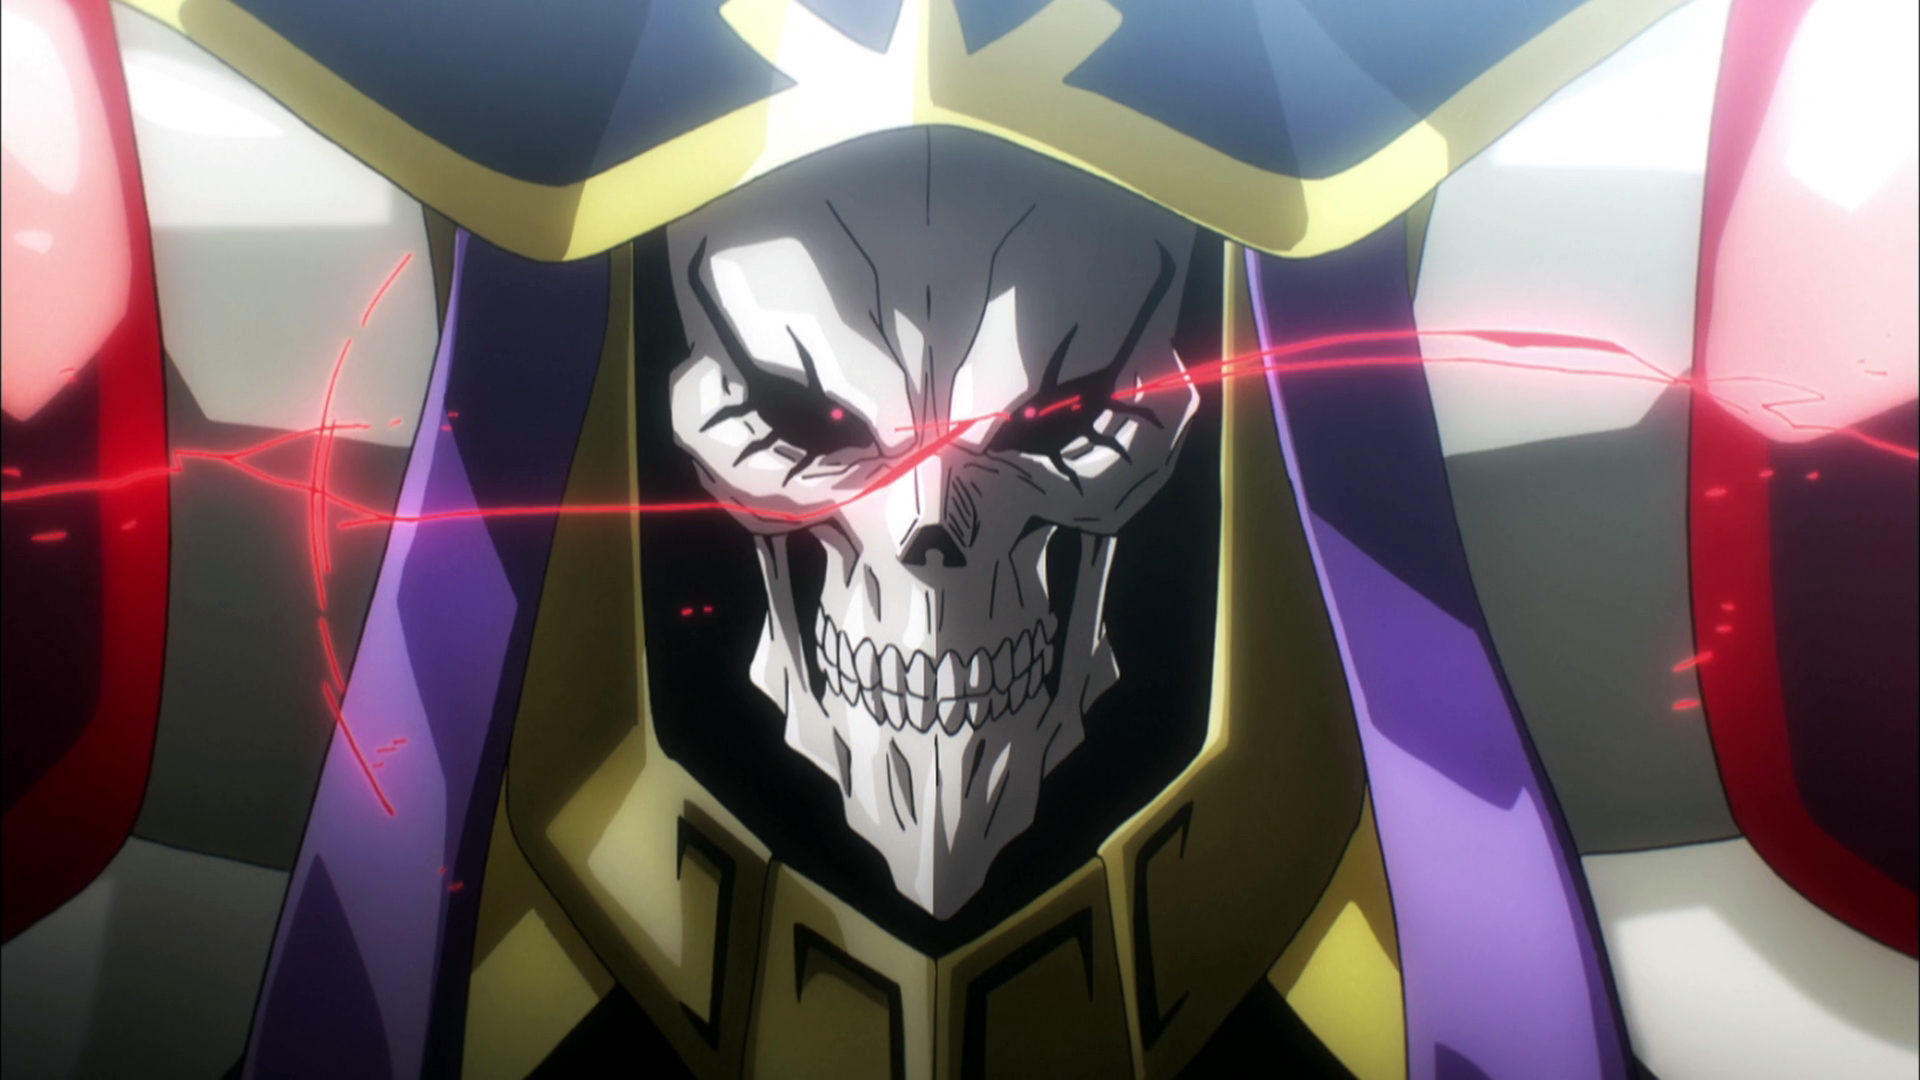 Ainz Ooal Gown Magic Caster Hd Wallpaper Background Image 1920x1080 Id 952646 Wallpaper Abyss